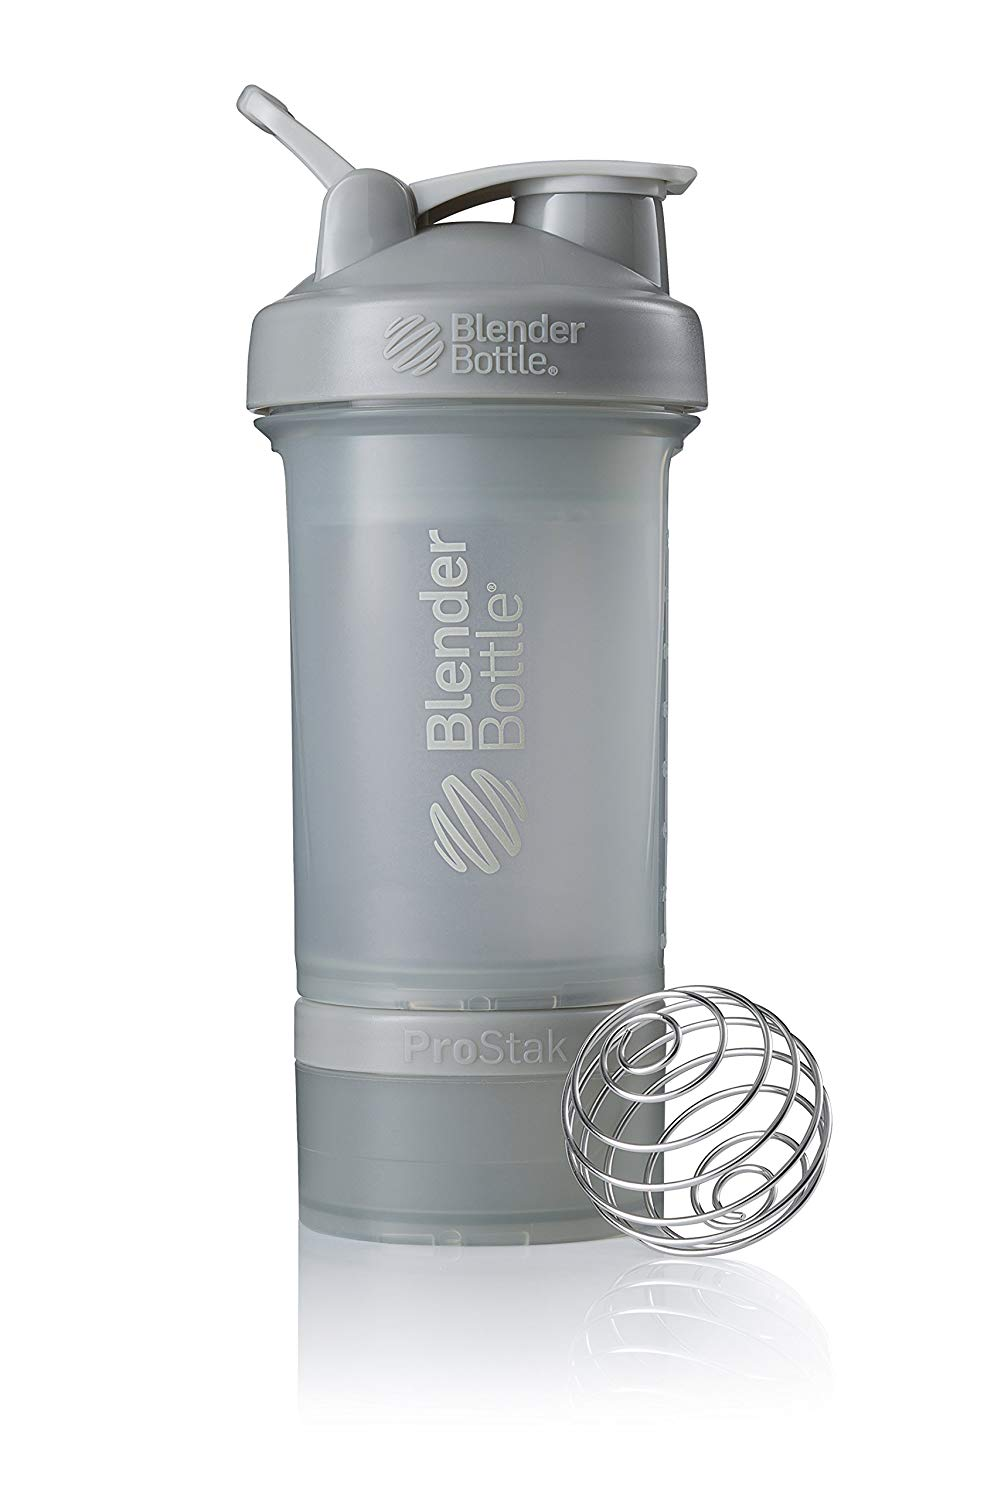 Blender Bottle ProStak Twist n' Lock Storage, 22 oz